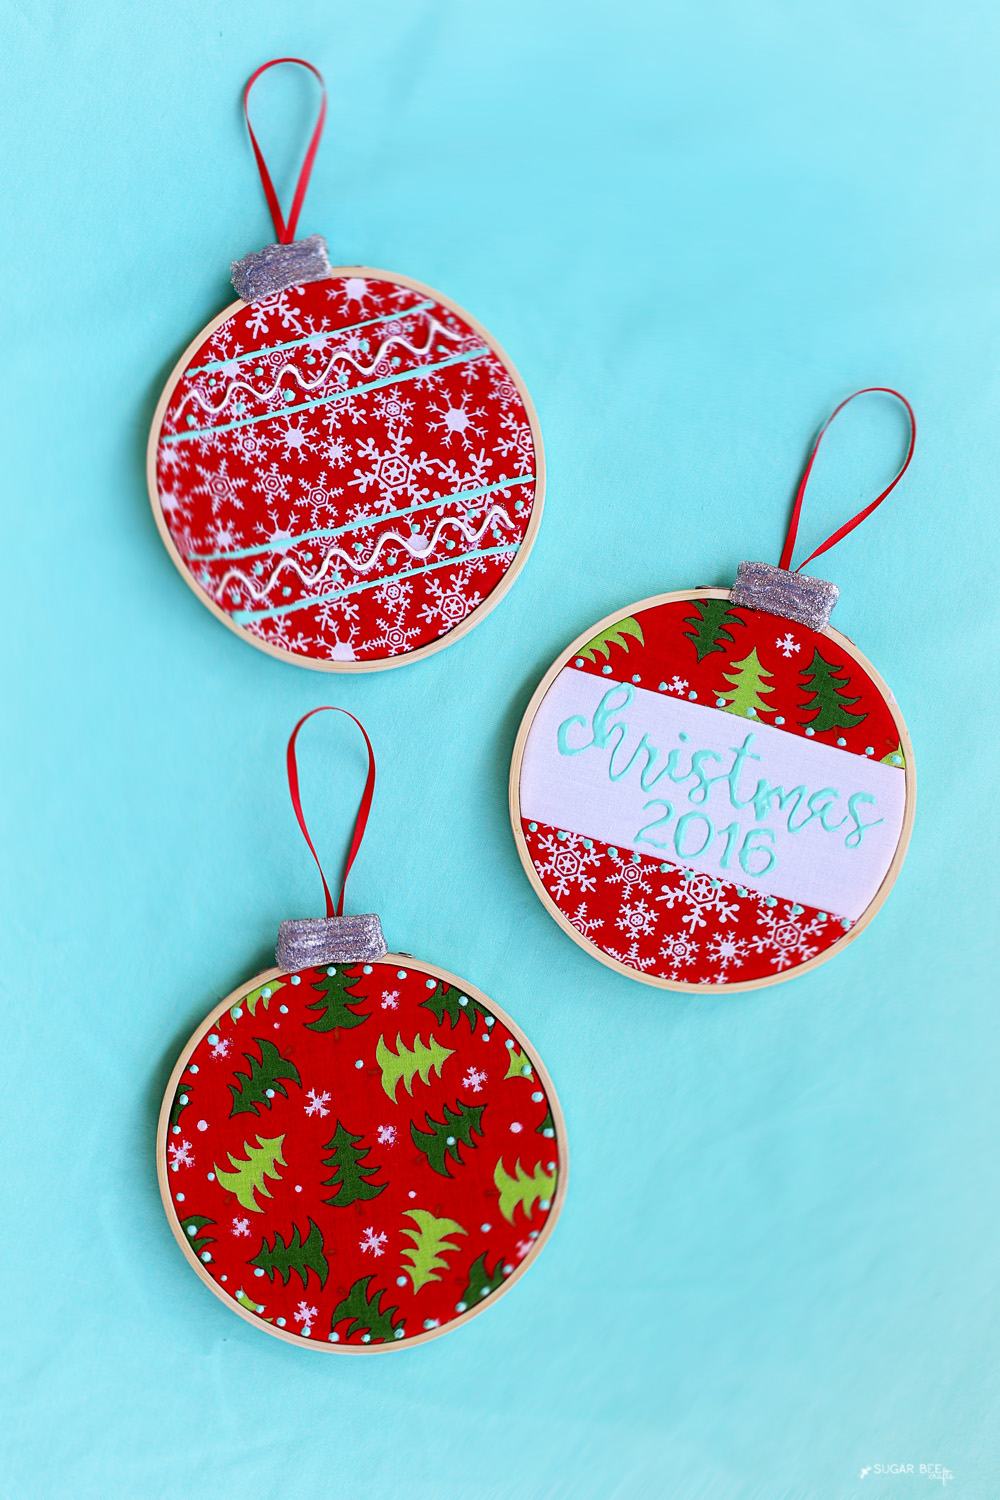 Holiday Ornament Craft Projects